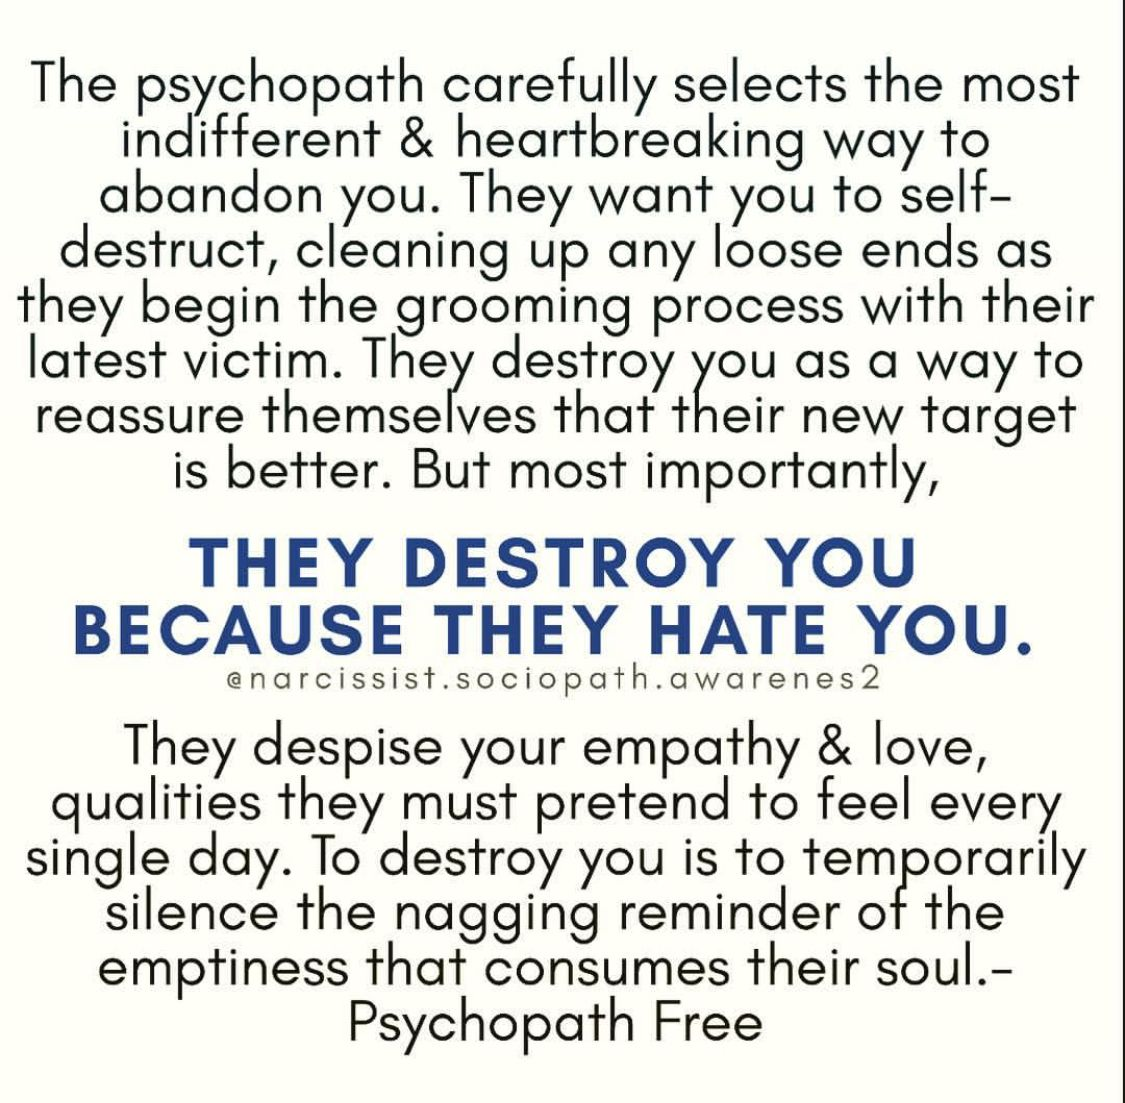 How to destroy a psychopath